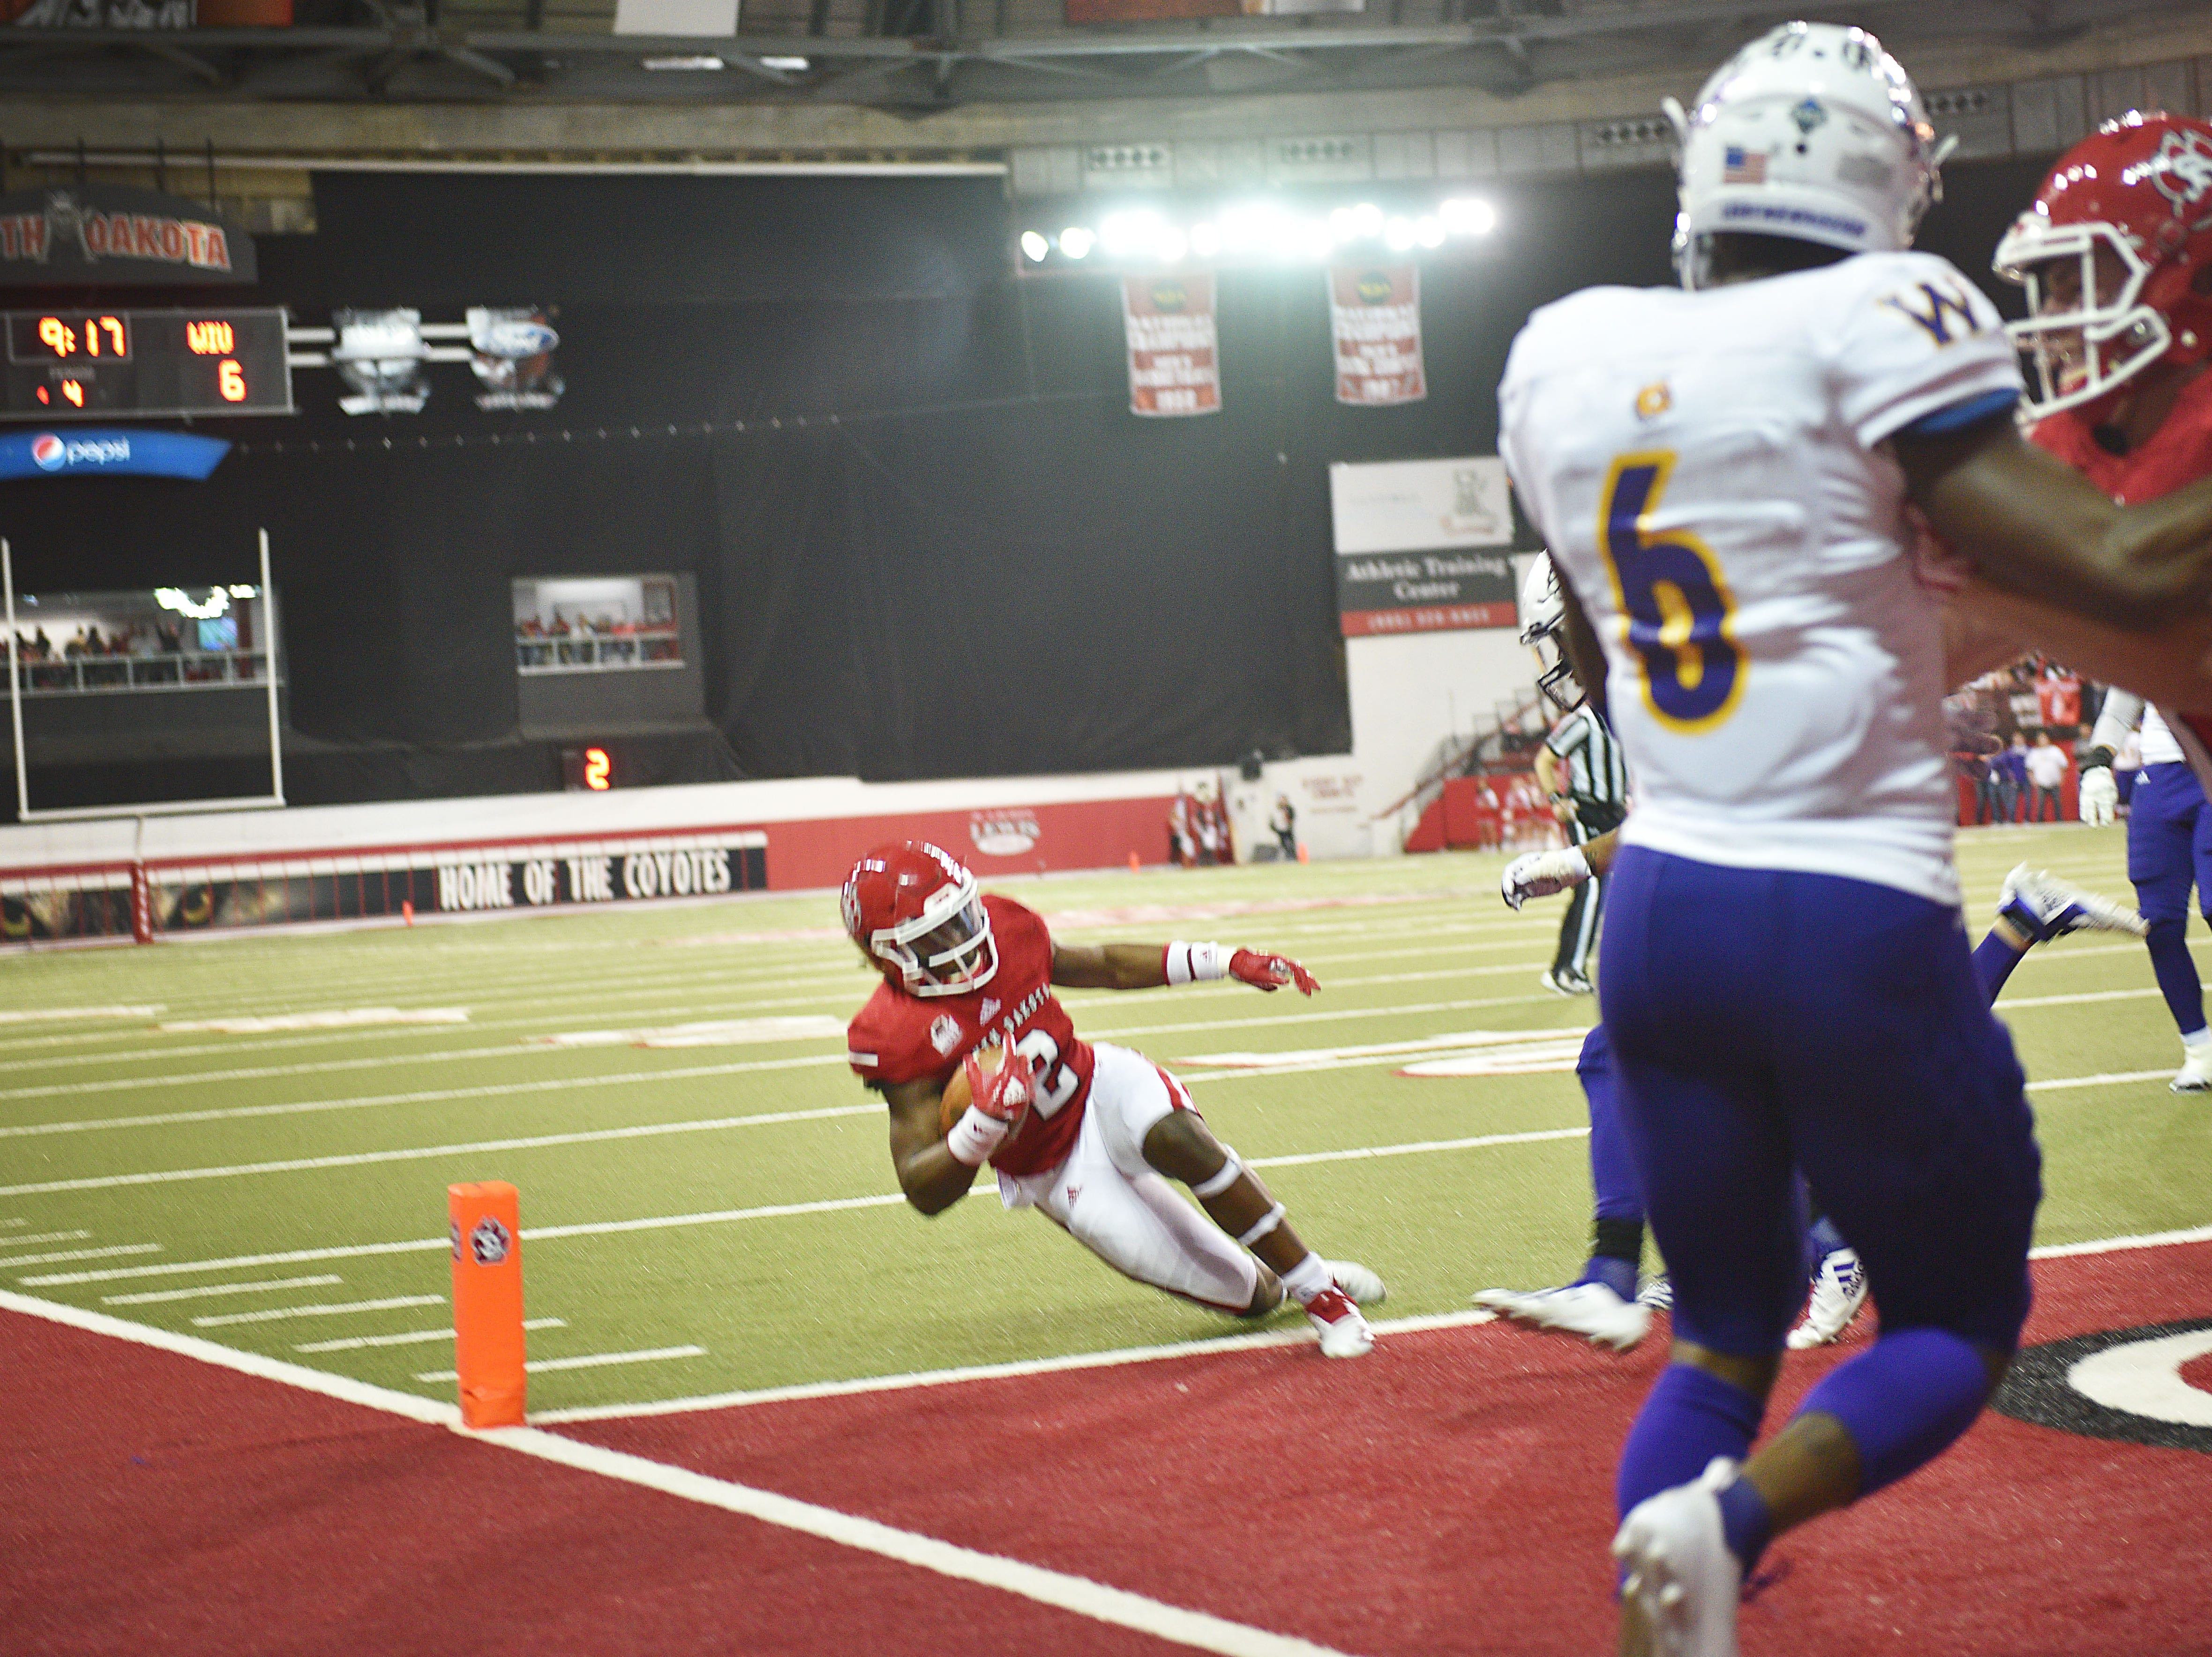 USD's Kai Henry scores a touchdown against Western Illinois during the game Saturday, Nov. 10, at the DakotaDome in Vermillion.